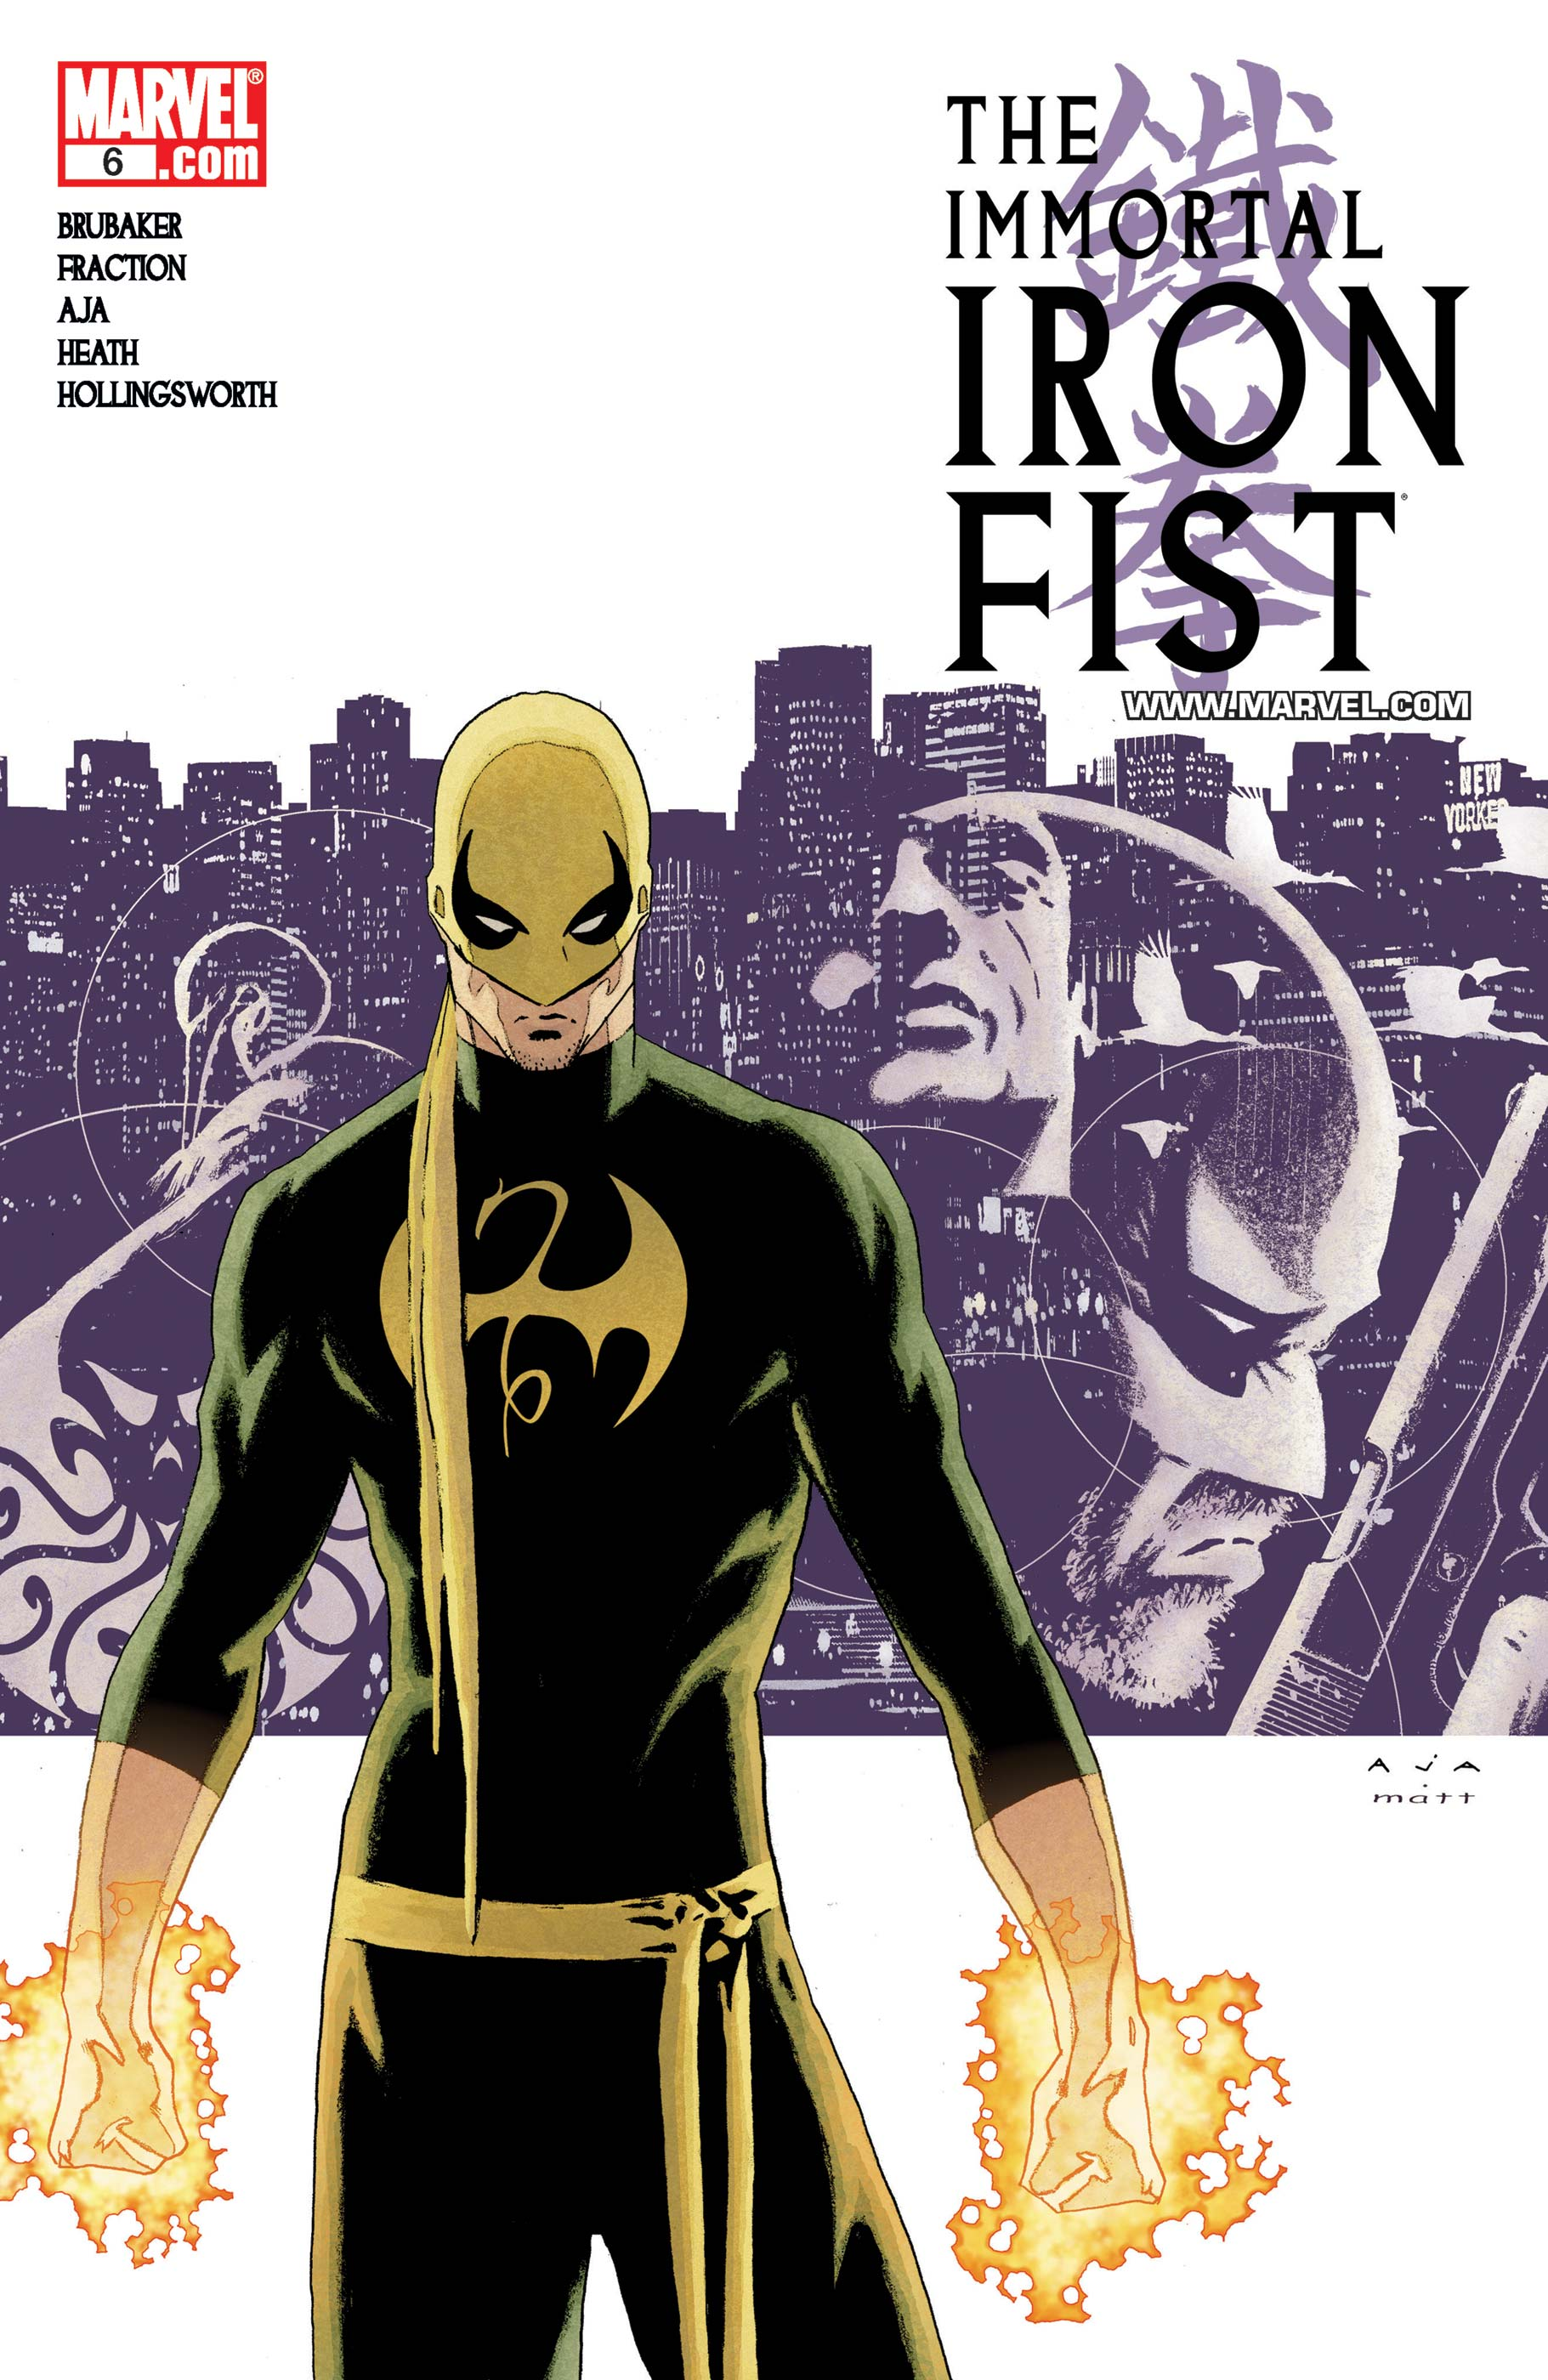 The Immortal Iron Fist (2006) #6